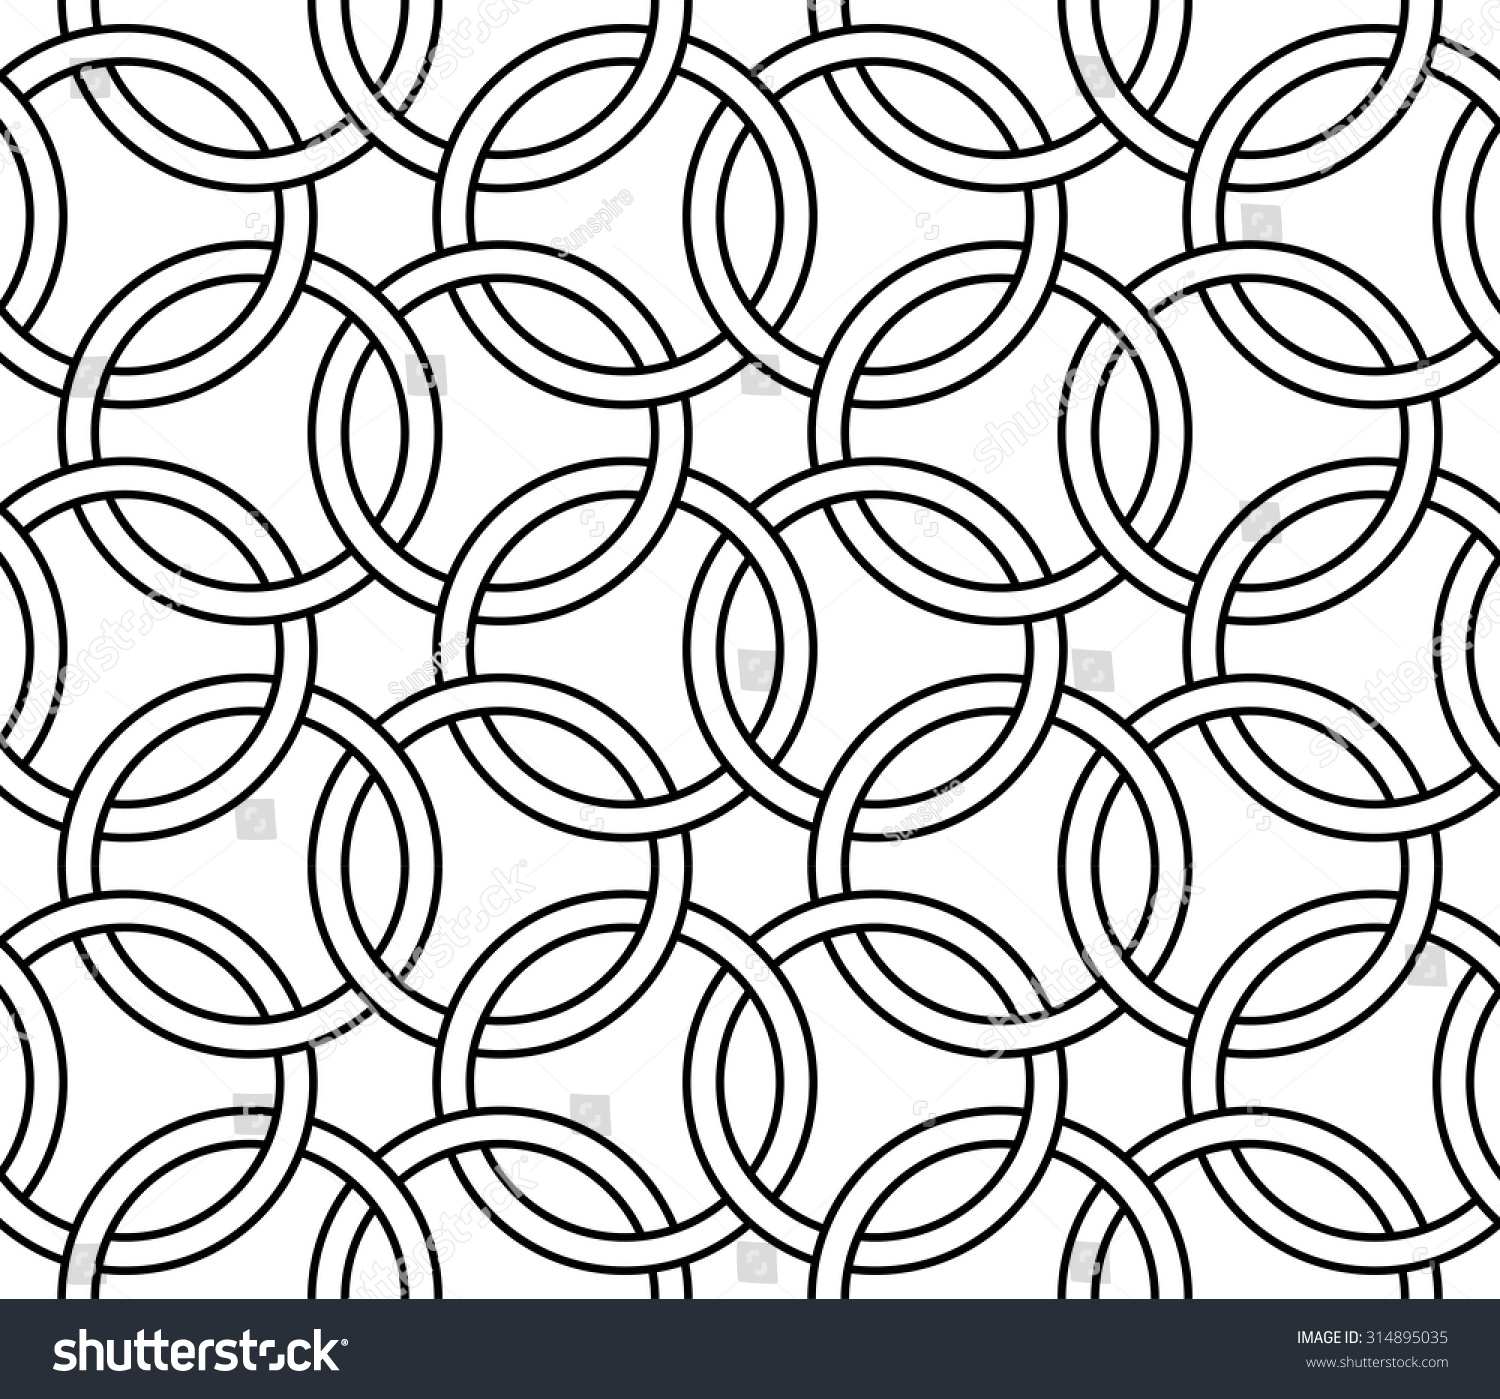 White bed sheet texture seamless - Vector Modern Seamless Pattern Geometry Circles Black And White Textile Print Stylish Background